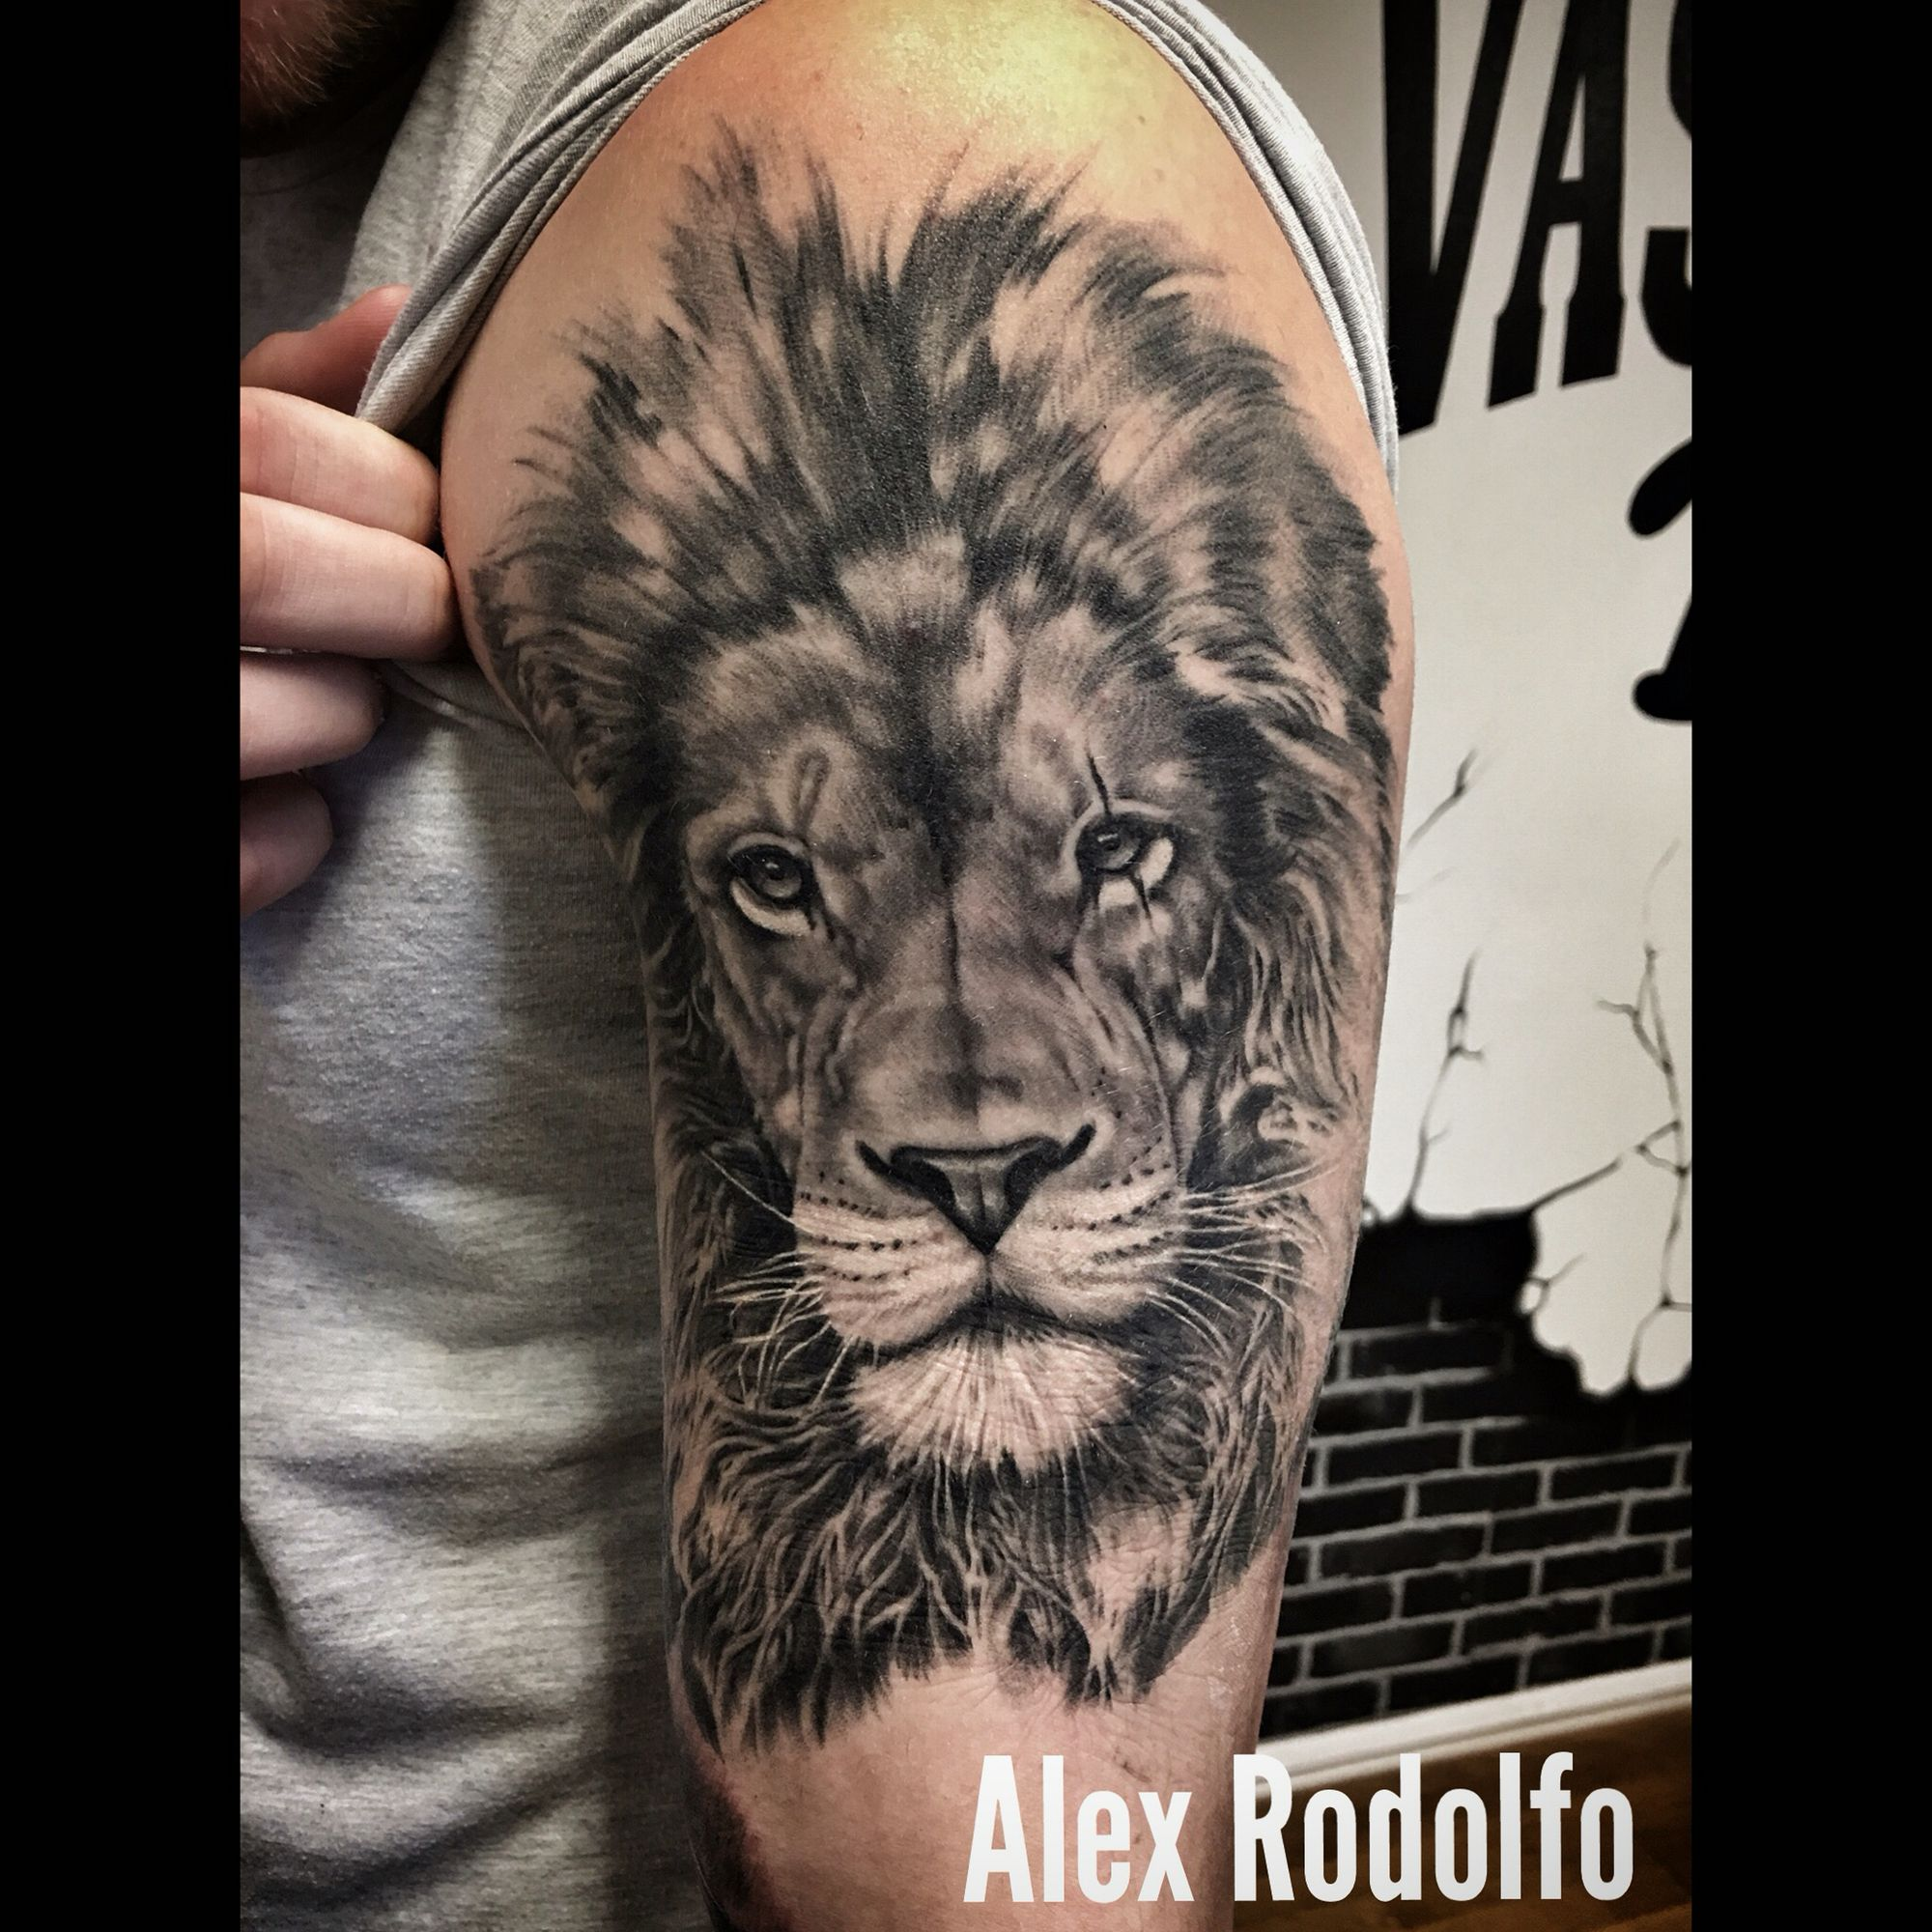 Pin By Zach On Alex Rodolfo Lion Tattoo Lion Tattoo Design Lion Tattoo Sleeves